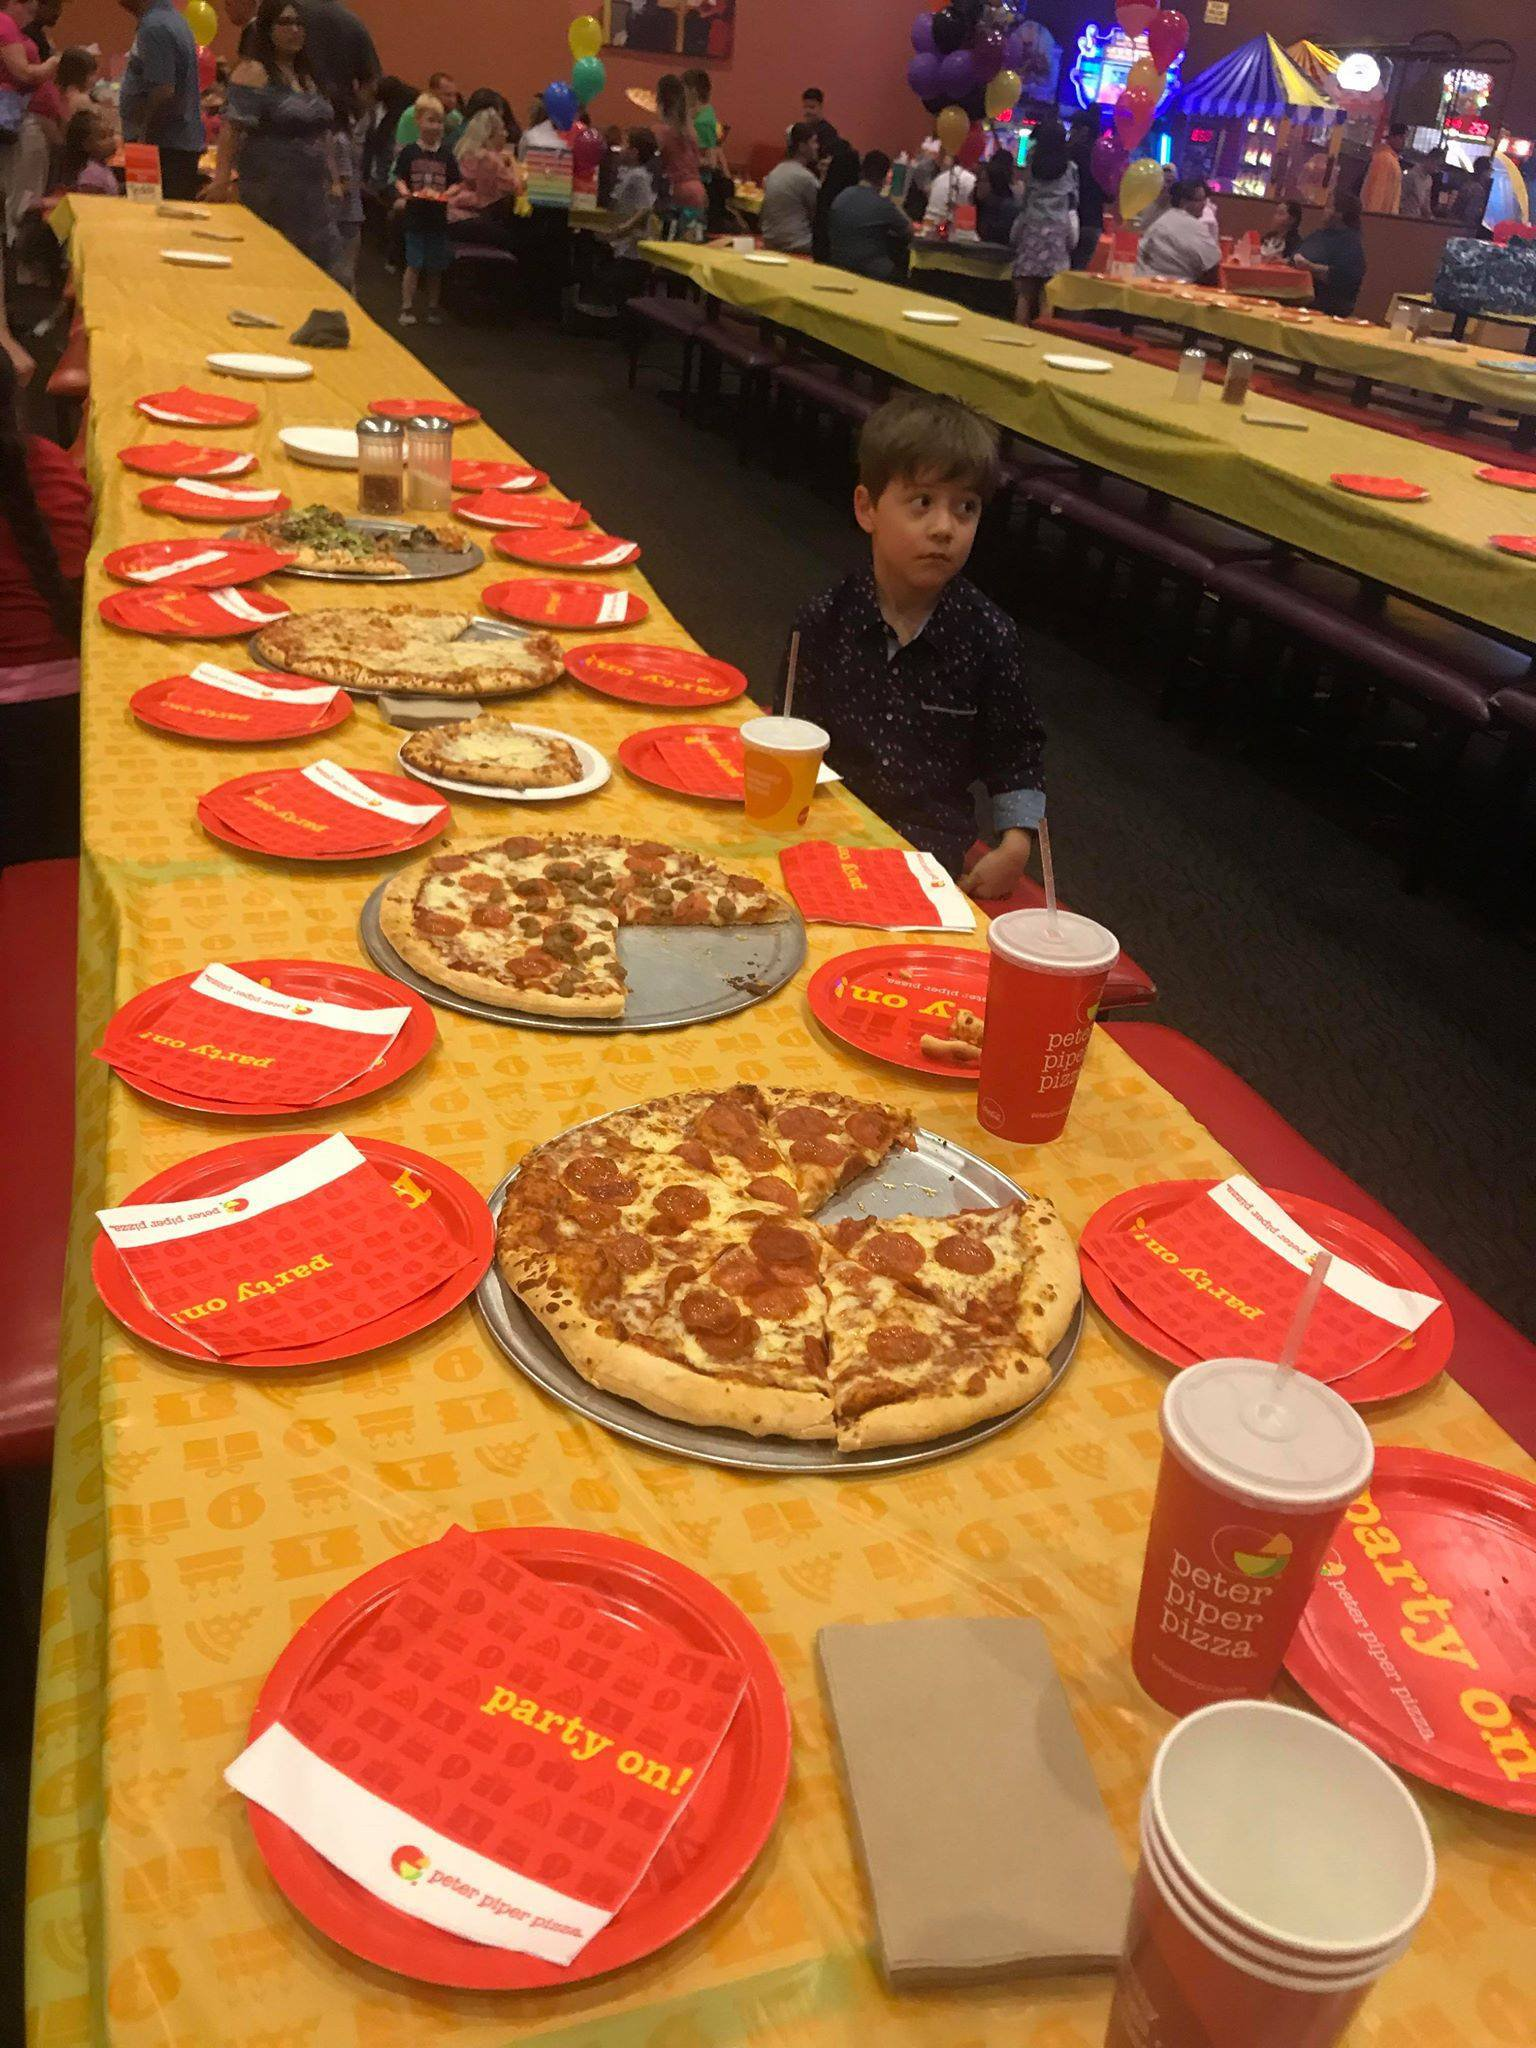 A six-year-old from Arizona has been showered with support on social media after a heartbreaking photo of him sitting alone at his birthday pizza party went viral. Teddy Mazzini invited 32 of his classmates to celebrate his birthday at a Peter Piper Pizza restaurant in Tucson on Sunday afternoon - but no one showed up.